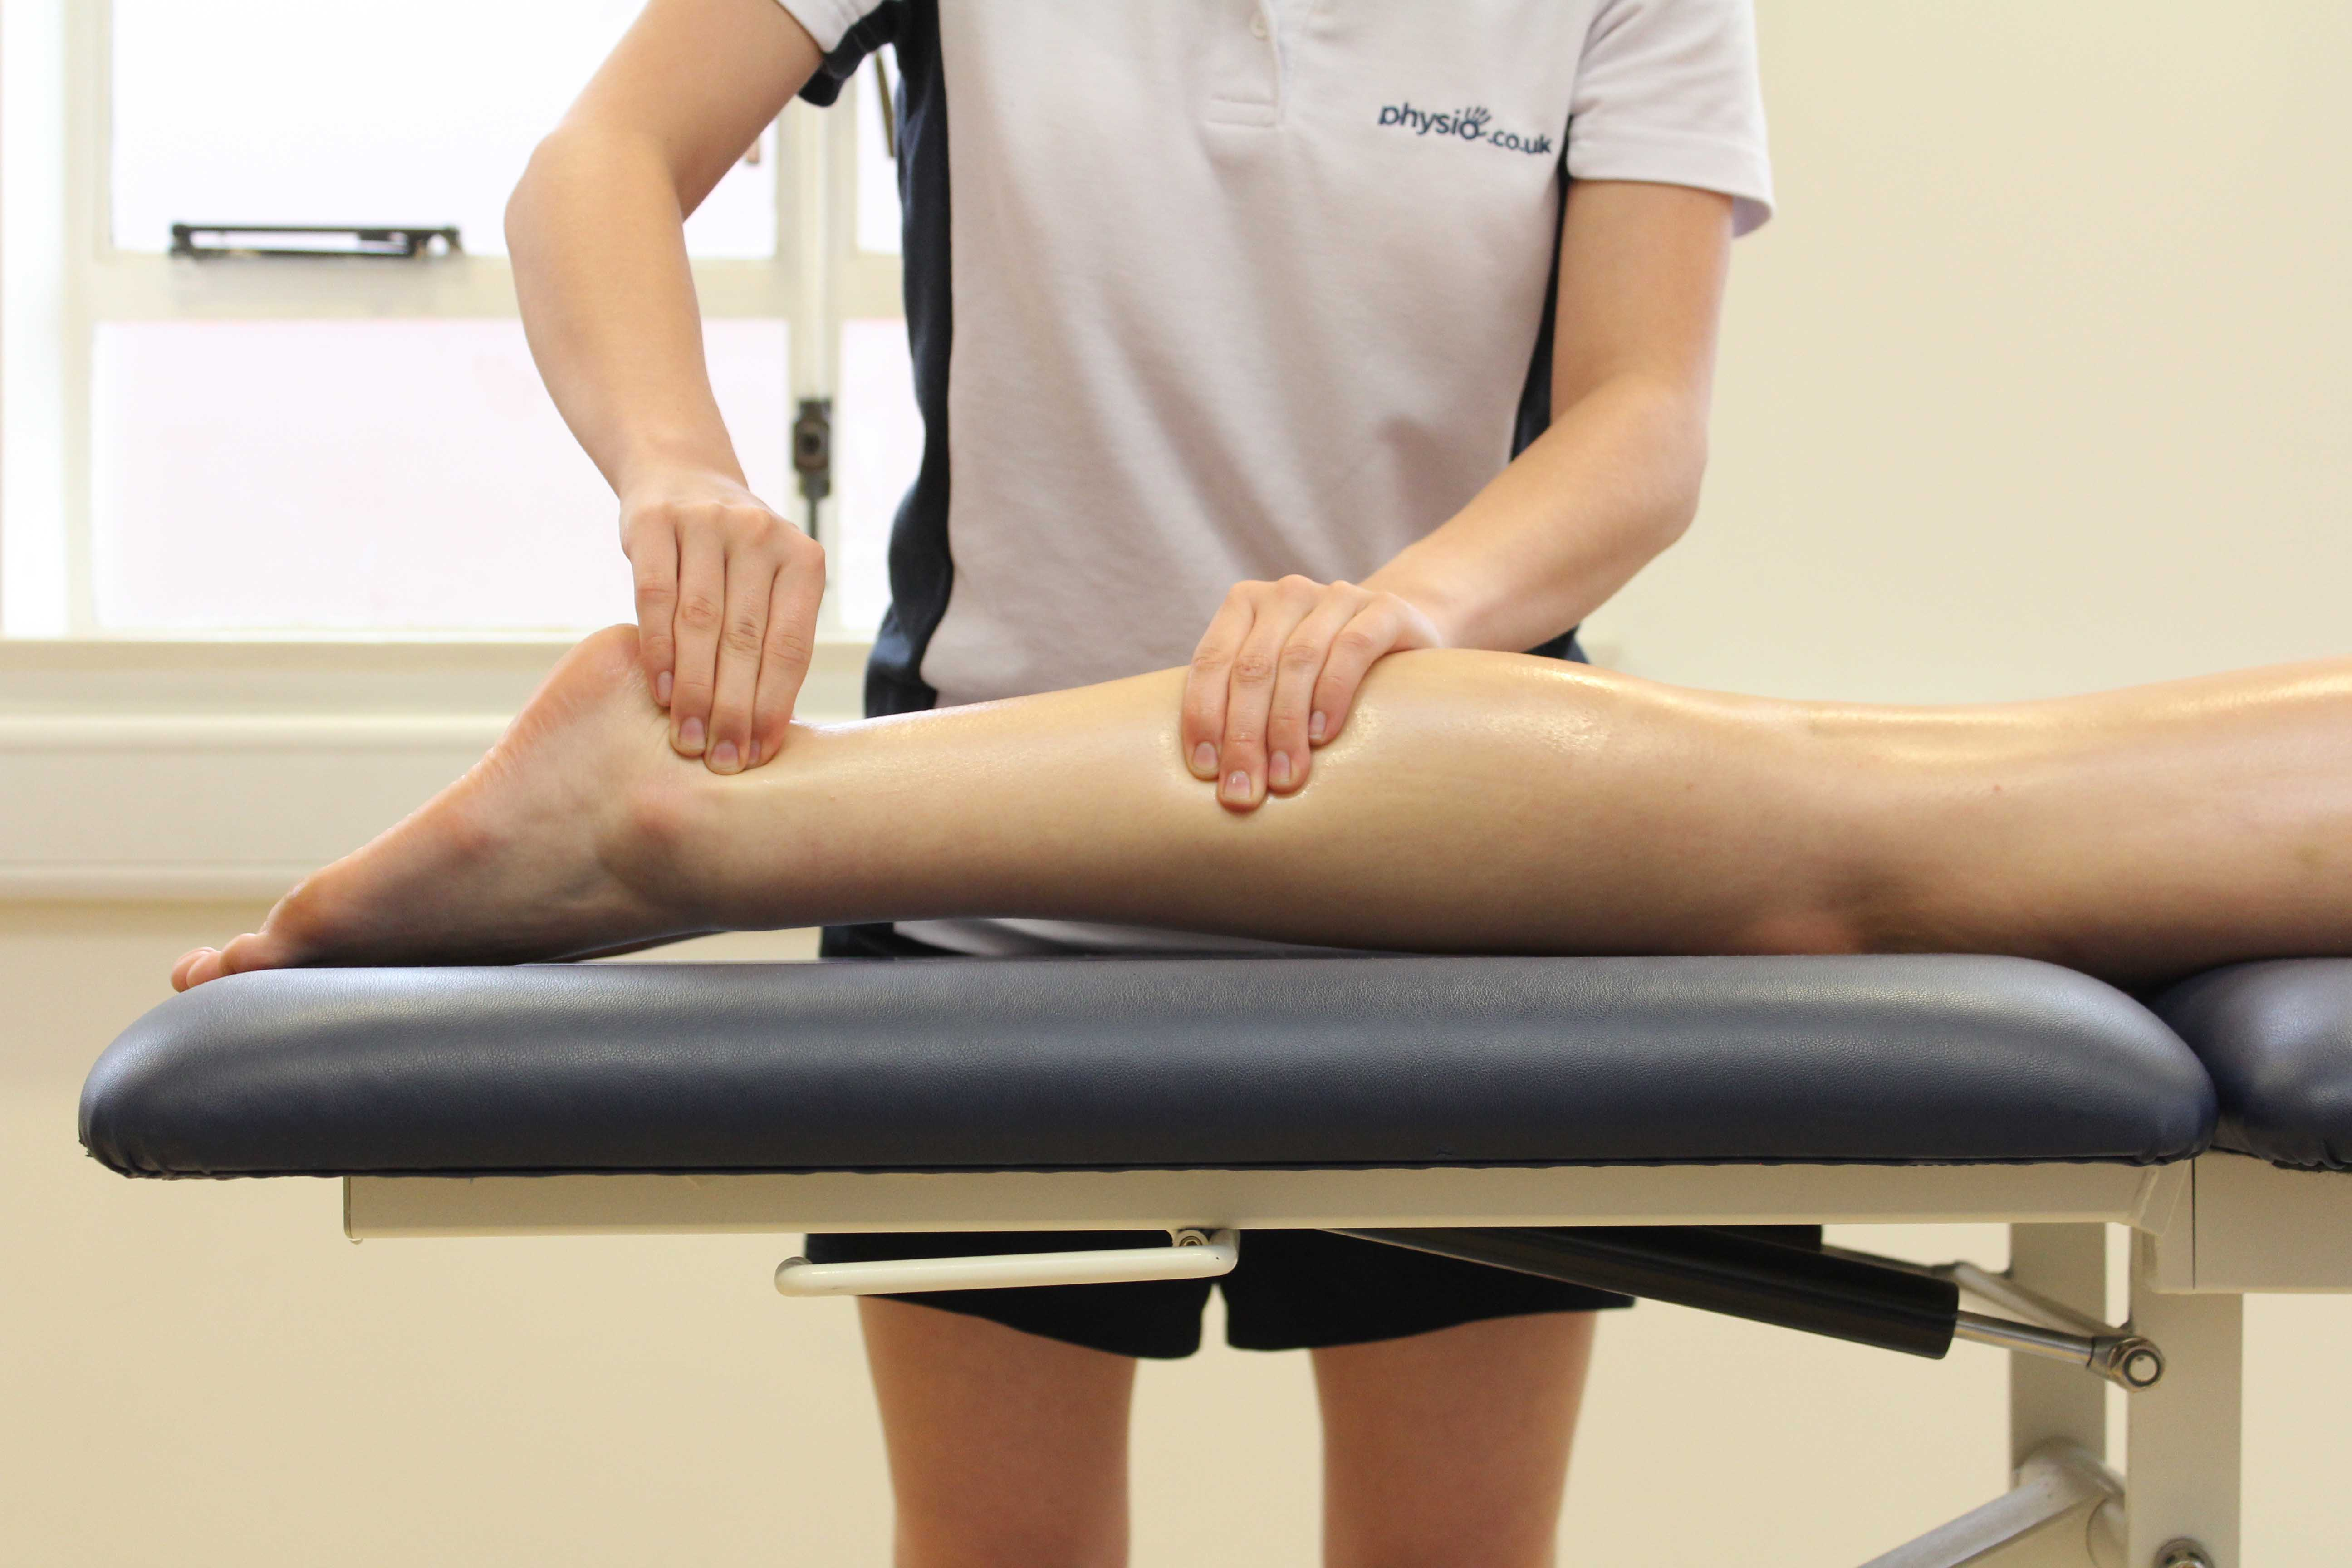 Orif Talus - Ankle - Surgery - What We Treat - Physio co uk